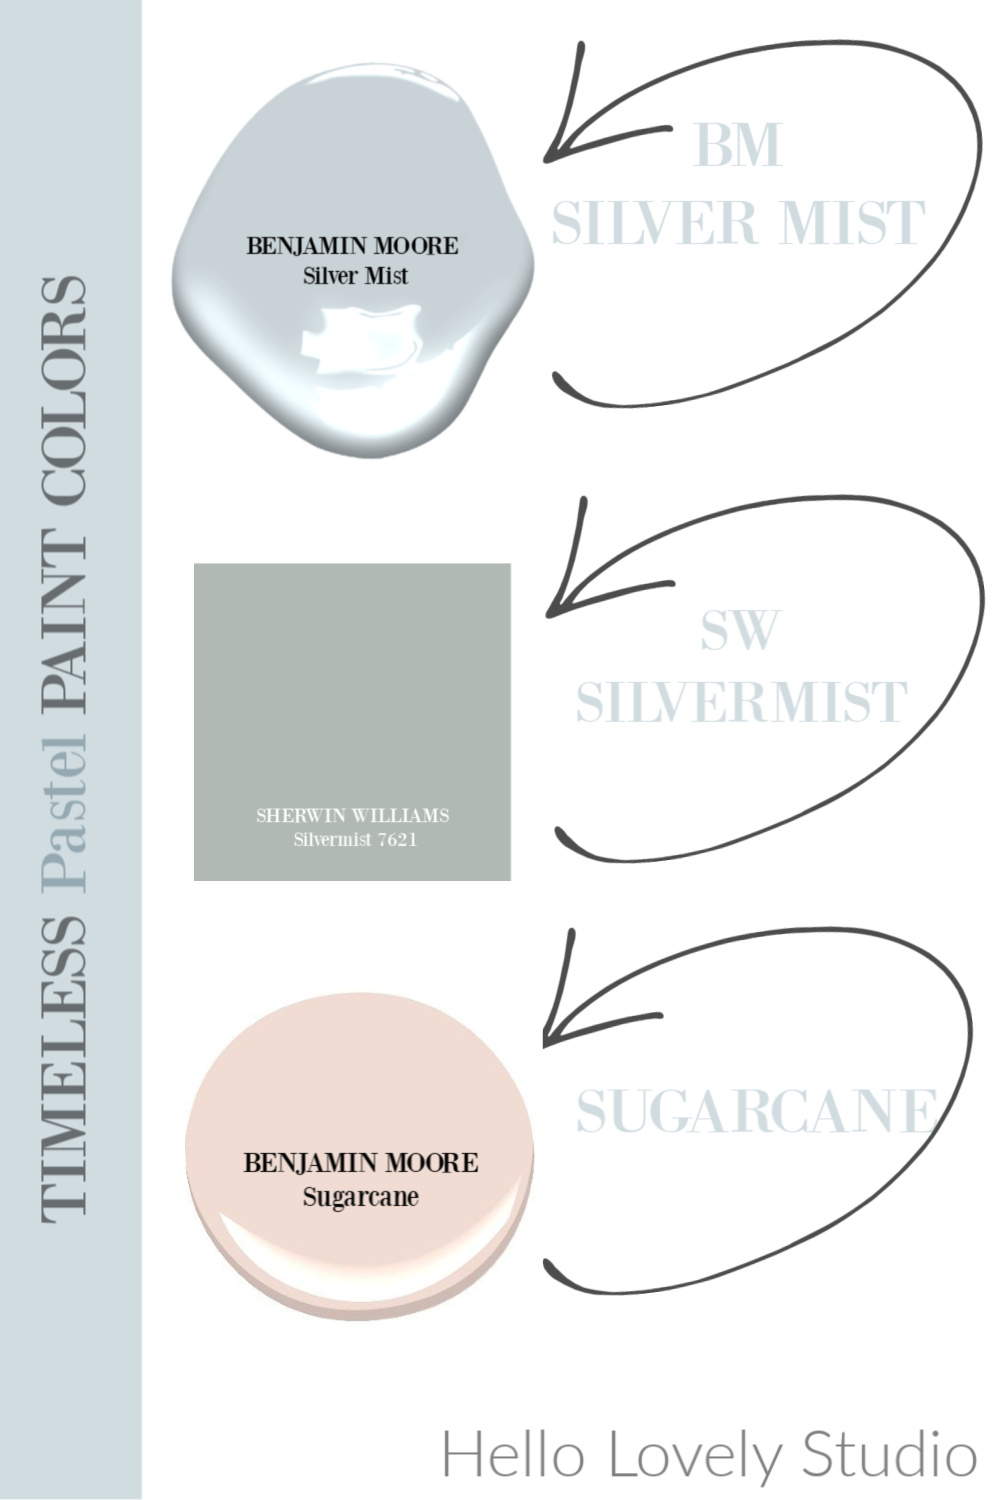 Timeless pastel paint colors to consider including SW Silvermist, BM Silver Mist and BM Sugarcane - Hello Lovely Studio. #paintcolors #frenchcountry #pastelpaint #interiordesign #romanticdecor #girlsbedrooms